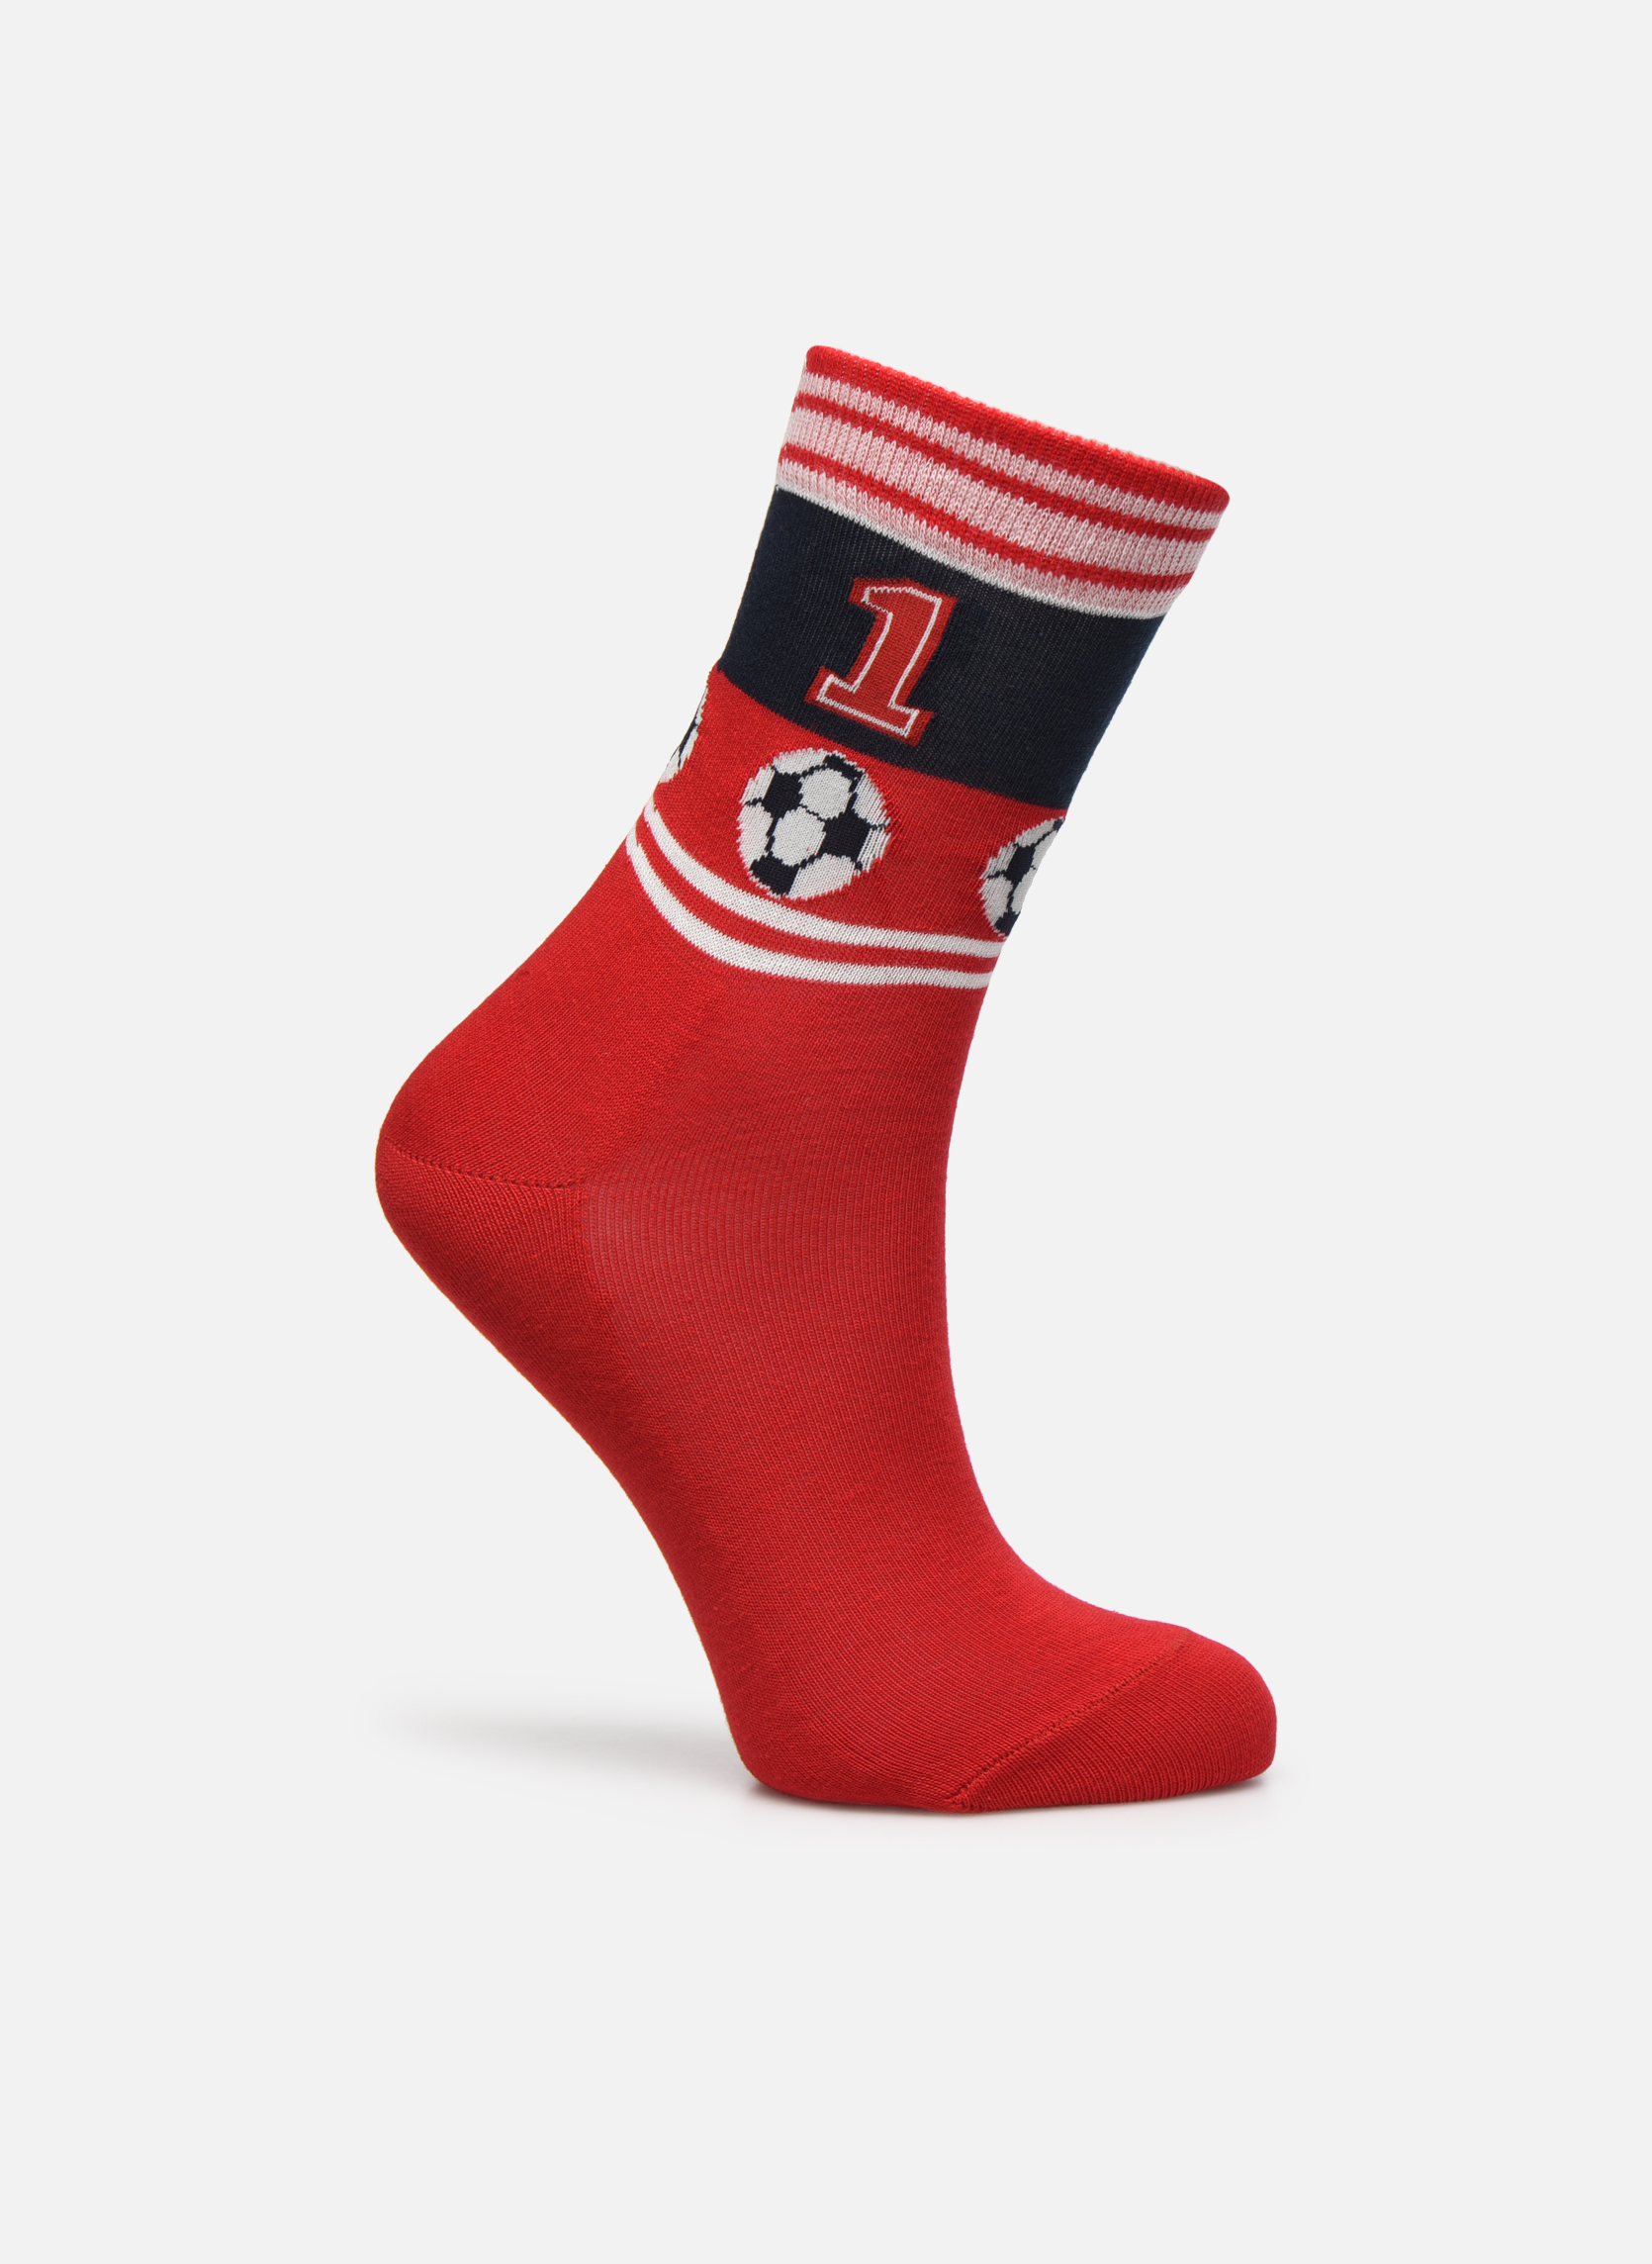 Socks & tights Accessories Ankle socks SOCCER